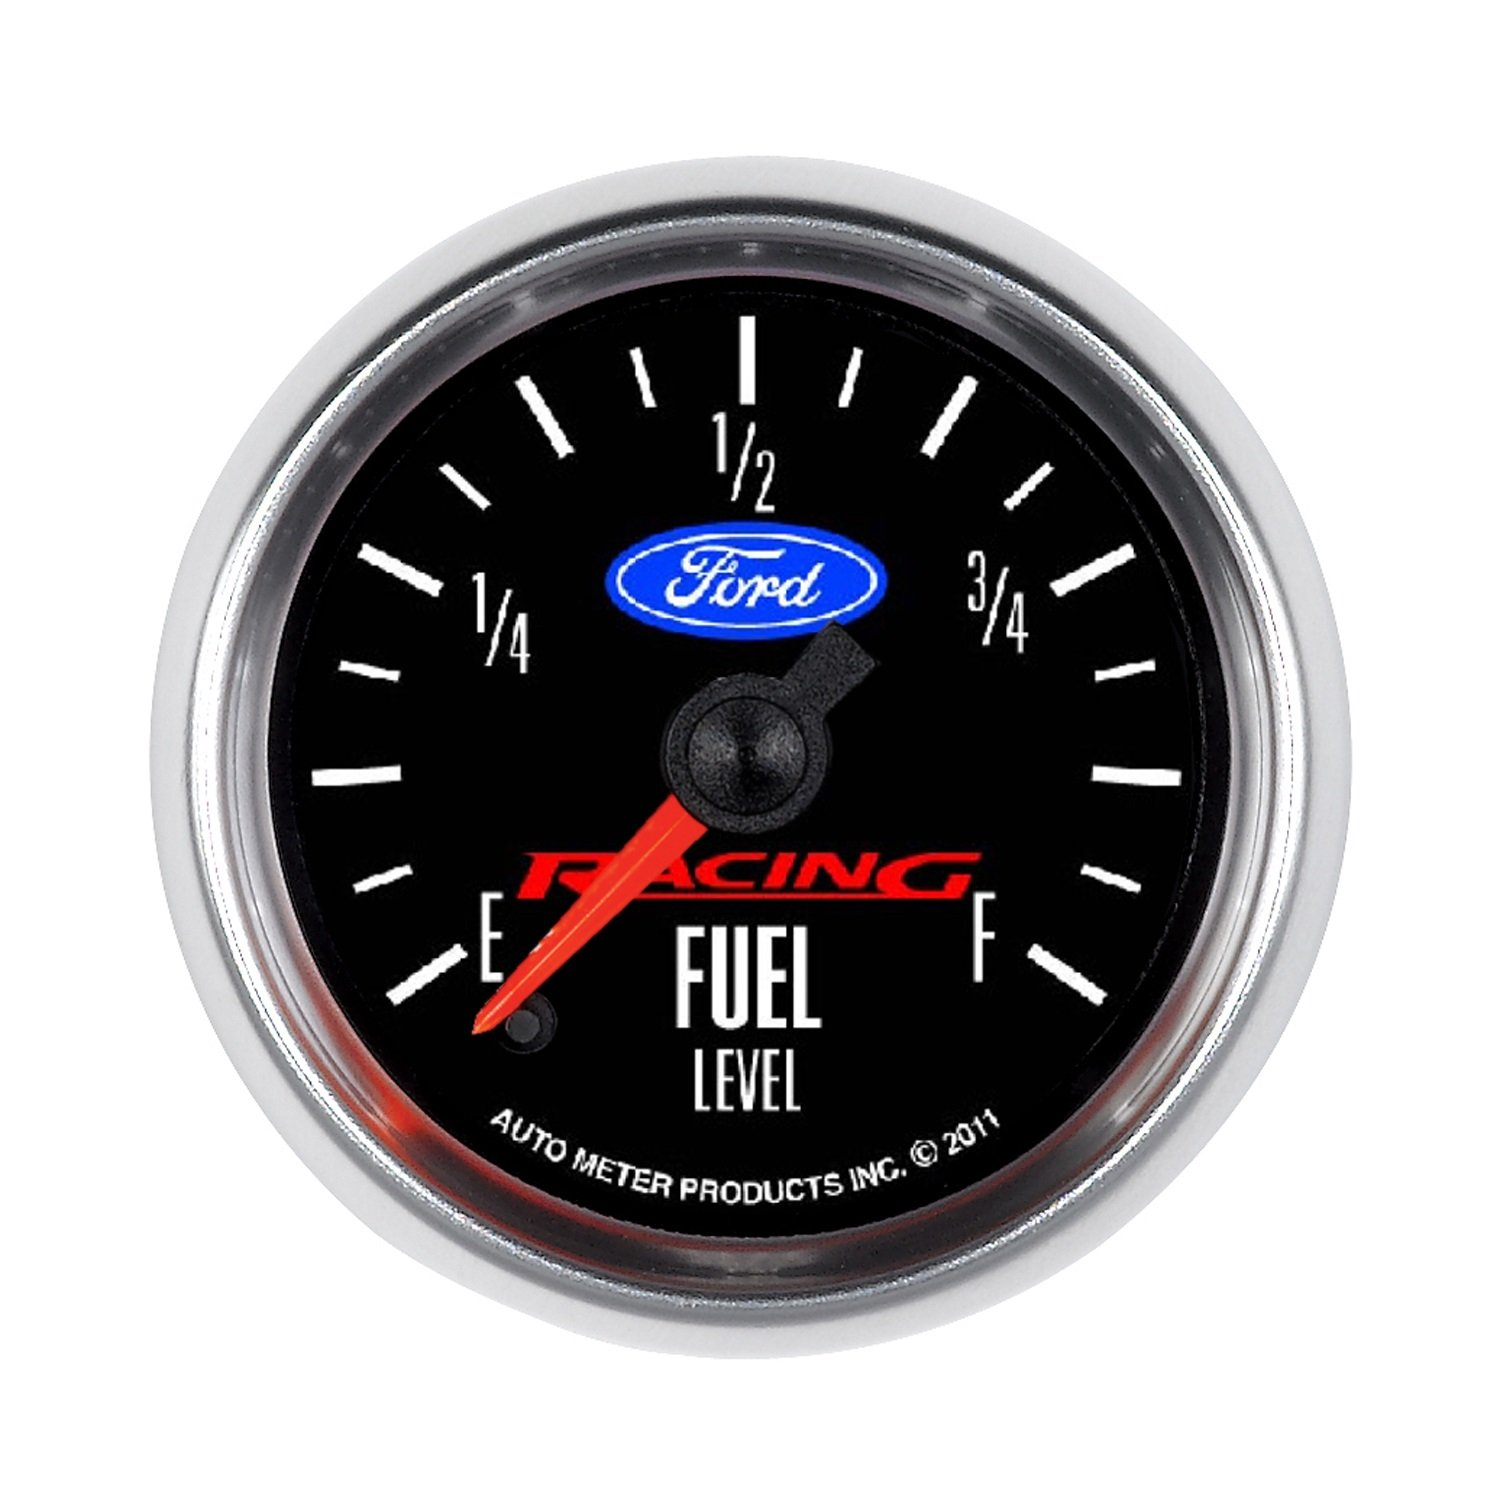 Auto Meter 880400 Ford Racing Series Electric Fuel Level Gauge